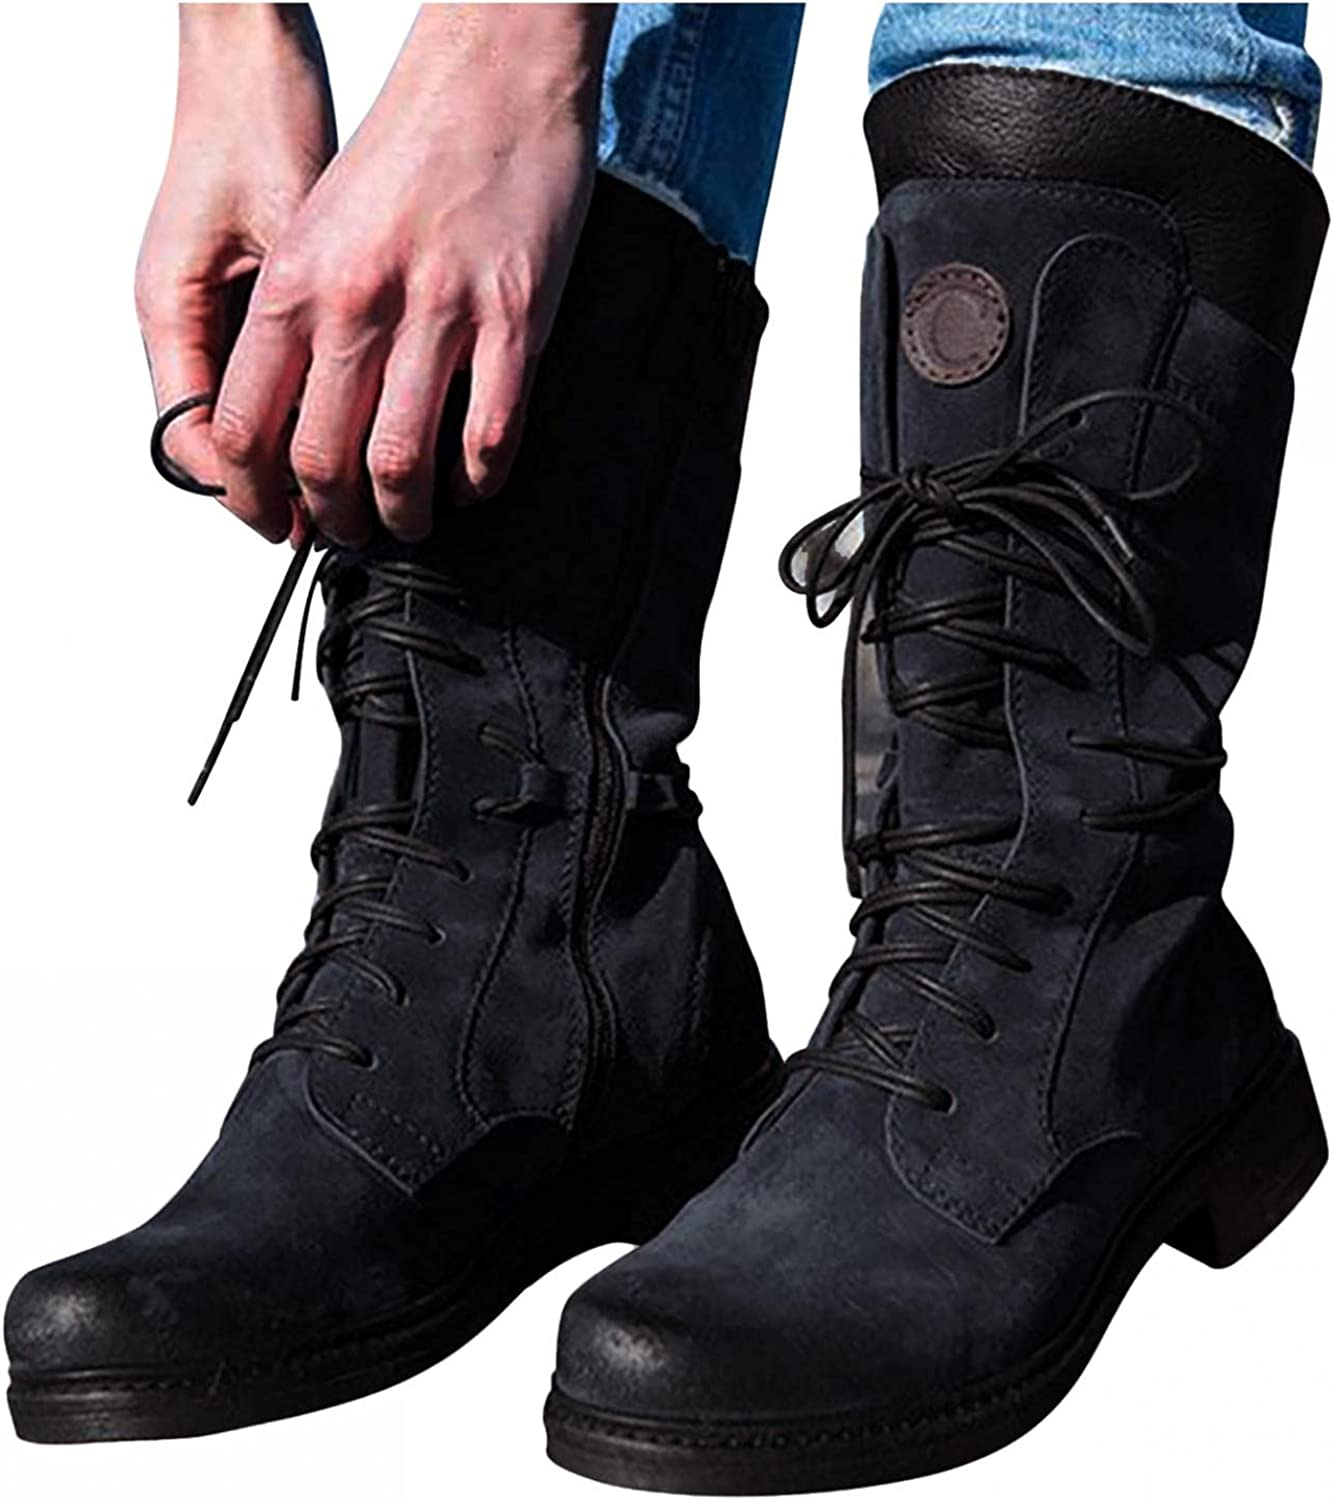 Hbeylia Women's Combat Boots Fashion Punk Anti Slip Chunky Block Low Heels Lace Up Mid Calf Boots Leather Suede Splicing Round Toe Cowboy Motorcycle Riding Boots For Women Girls